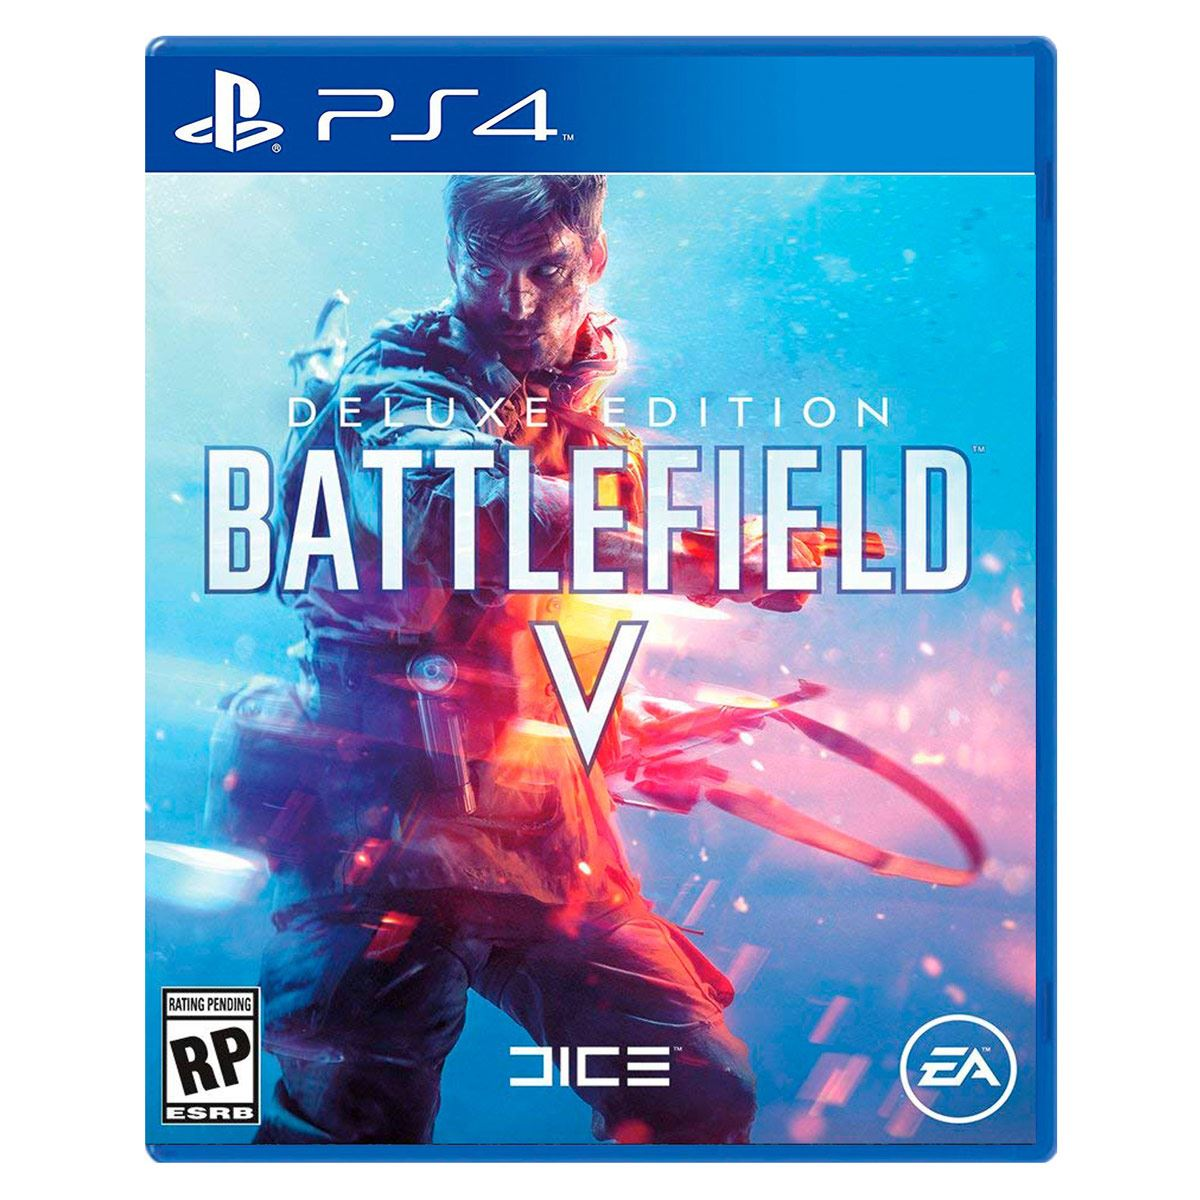 Ps4 battlefield v deluxe edition  - Sanborns